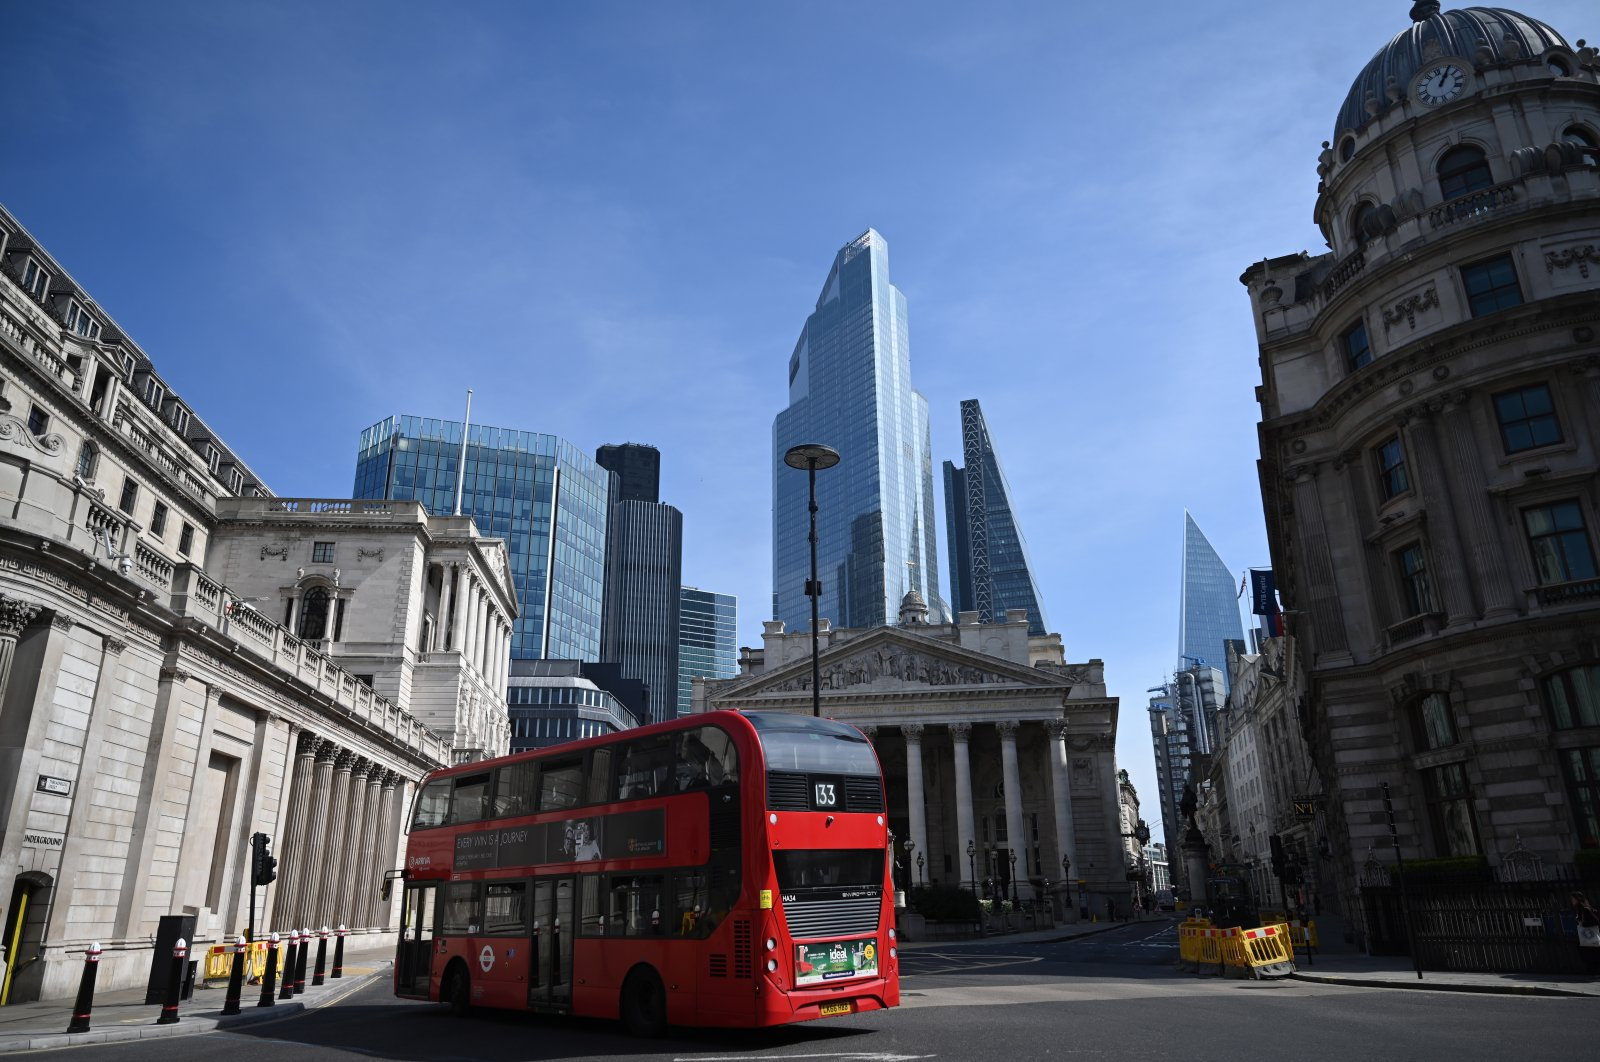 A bus passes the Bank of England in The City of London financial district in London, Britain, April 15, 2020. (EPA Photo)